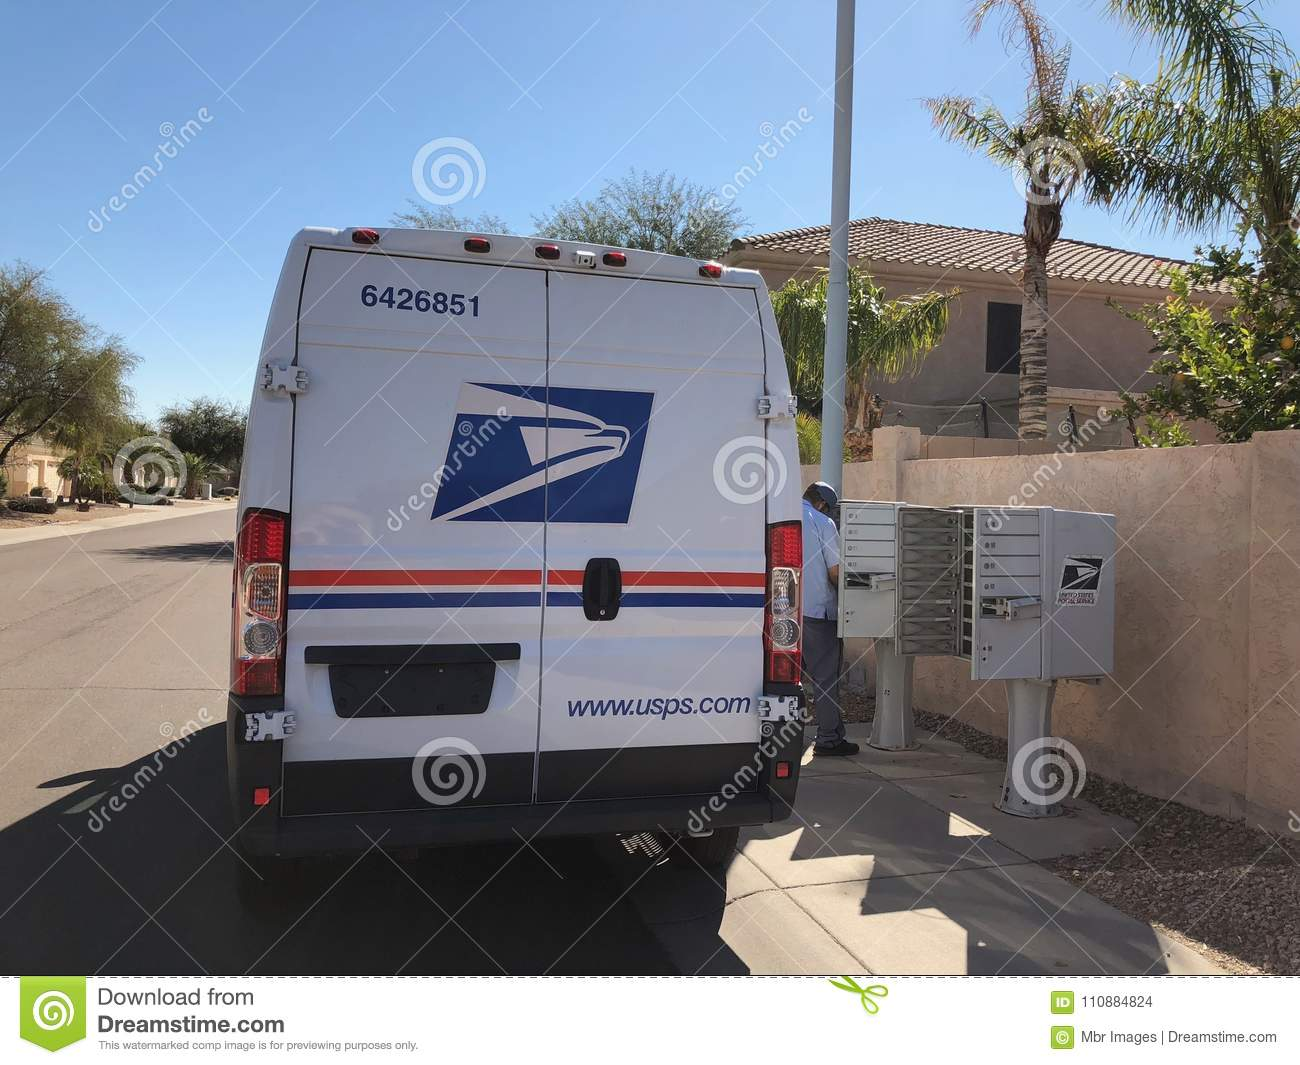 Usps Delivery Van In Arizona Editorial Stock Image Image Of Photo